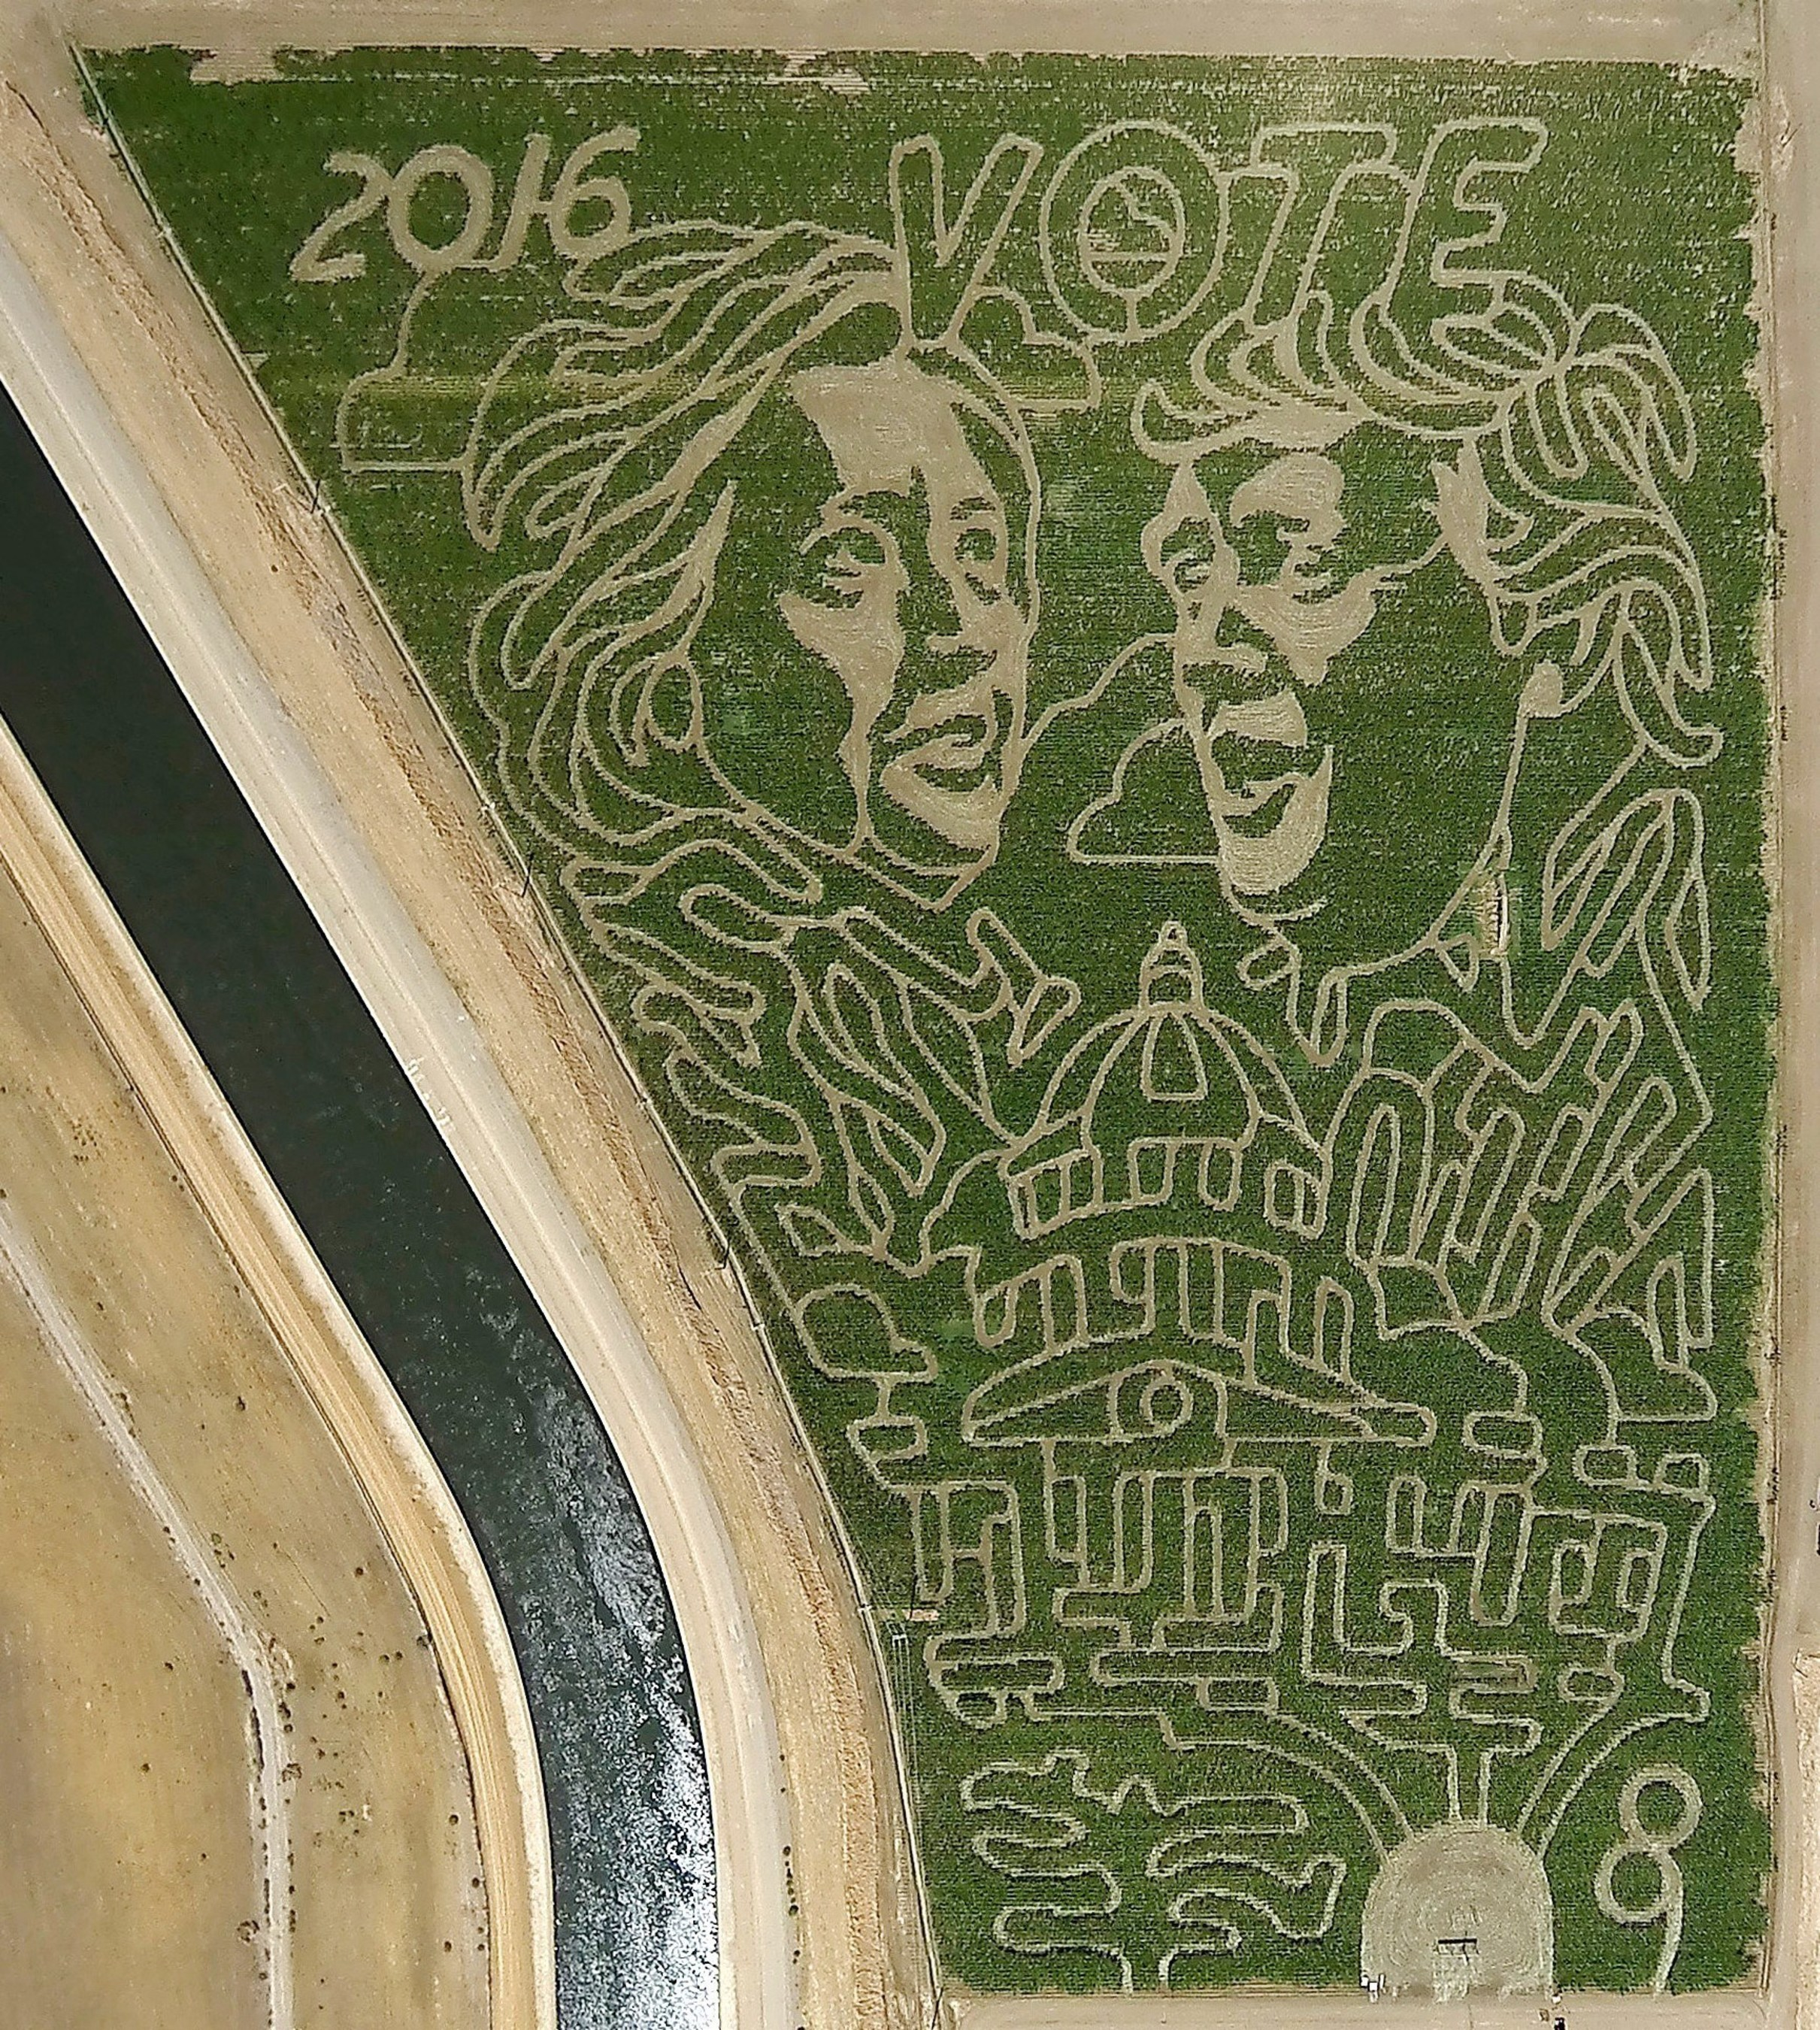 Huge Election-Themed Corn Maze in Patterson Features Likenesses of Hillary and Trump